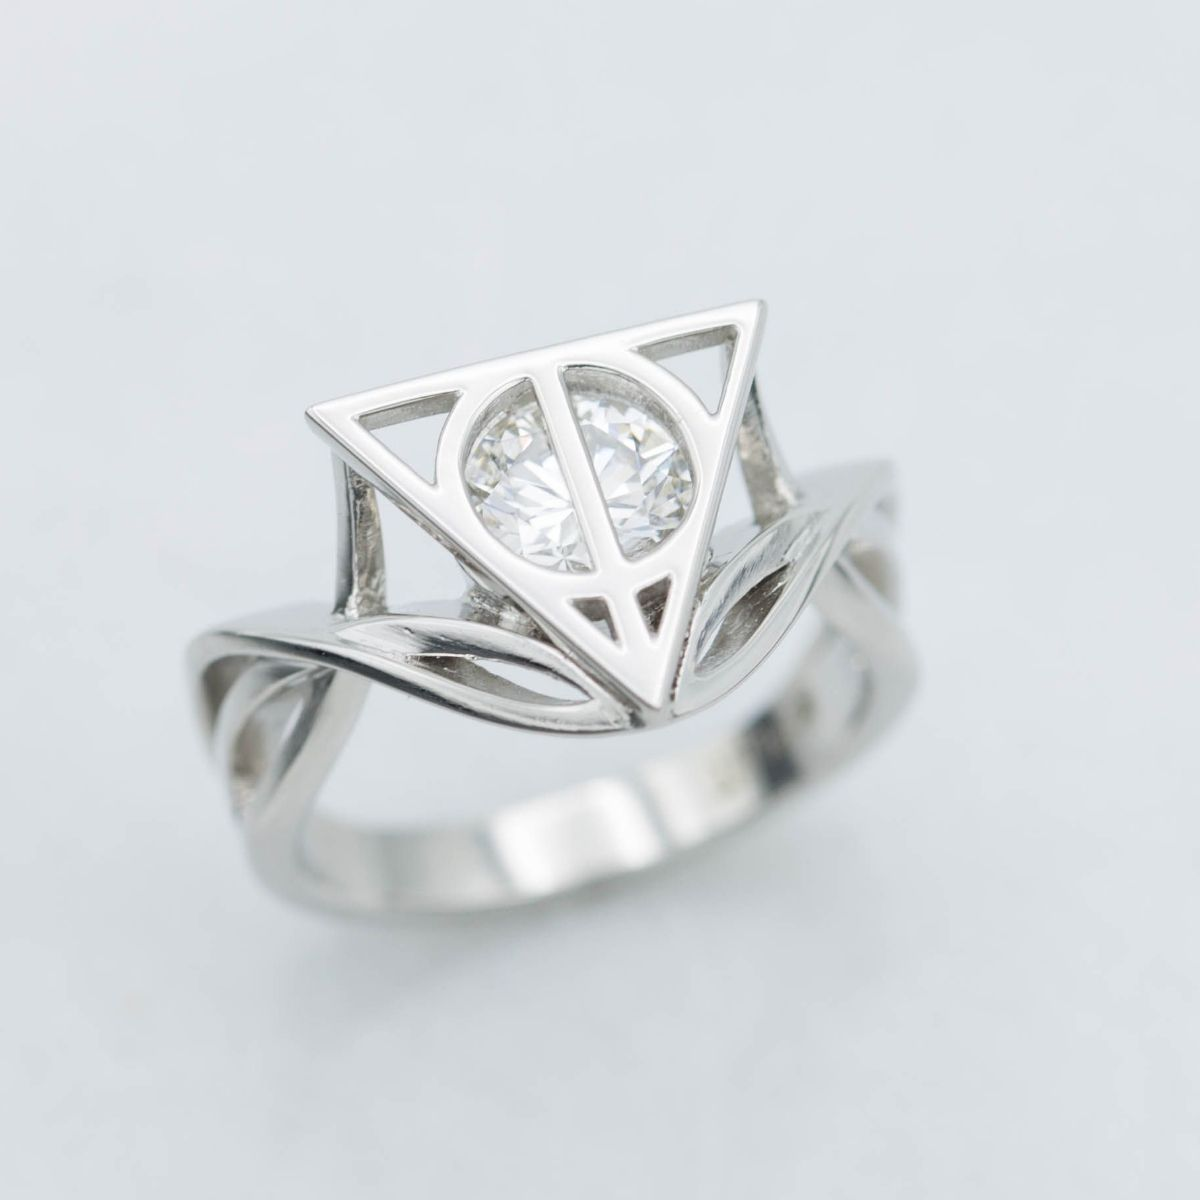 Geeky Engagement Rings | Nerdy Wedding Bands | CustomMade.com